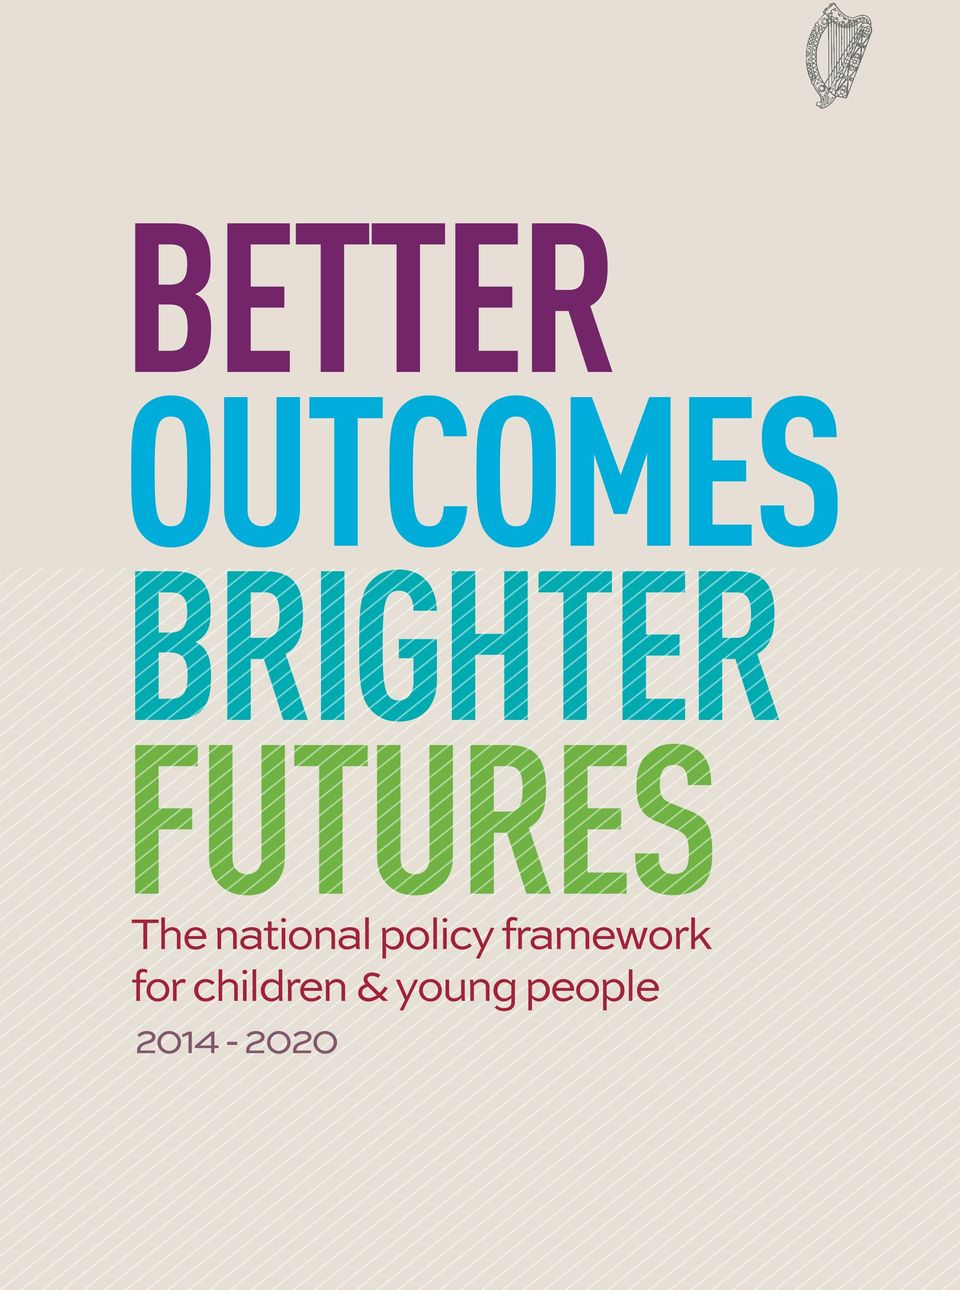 policy framework for